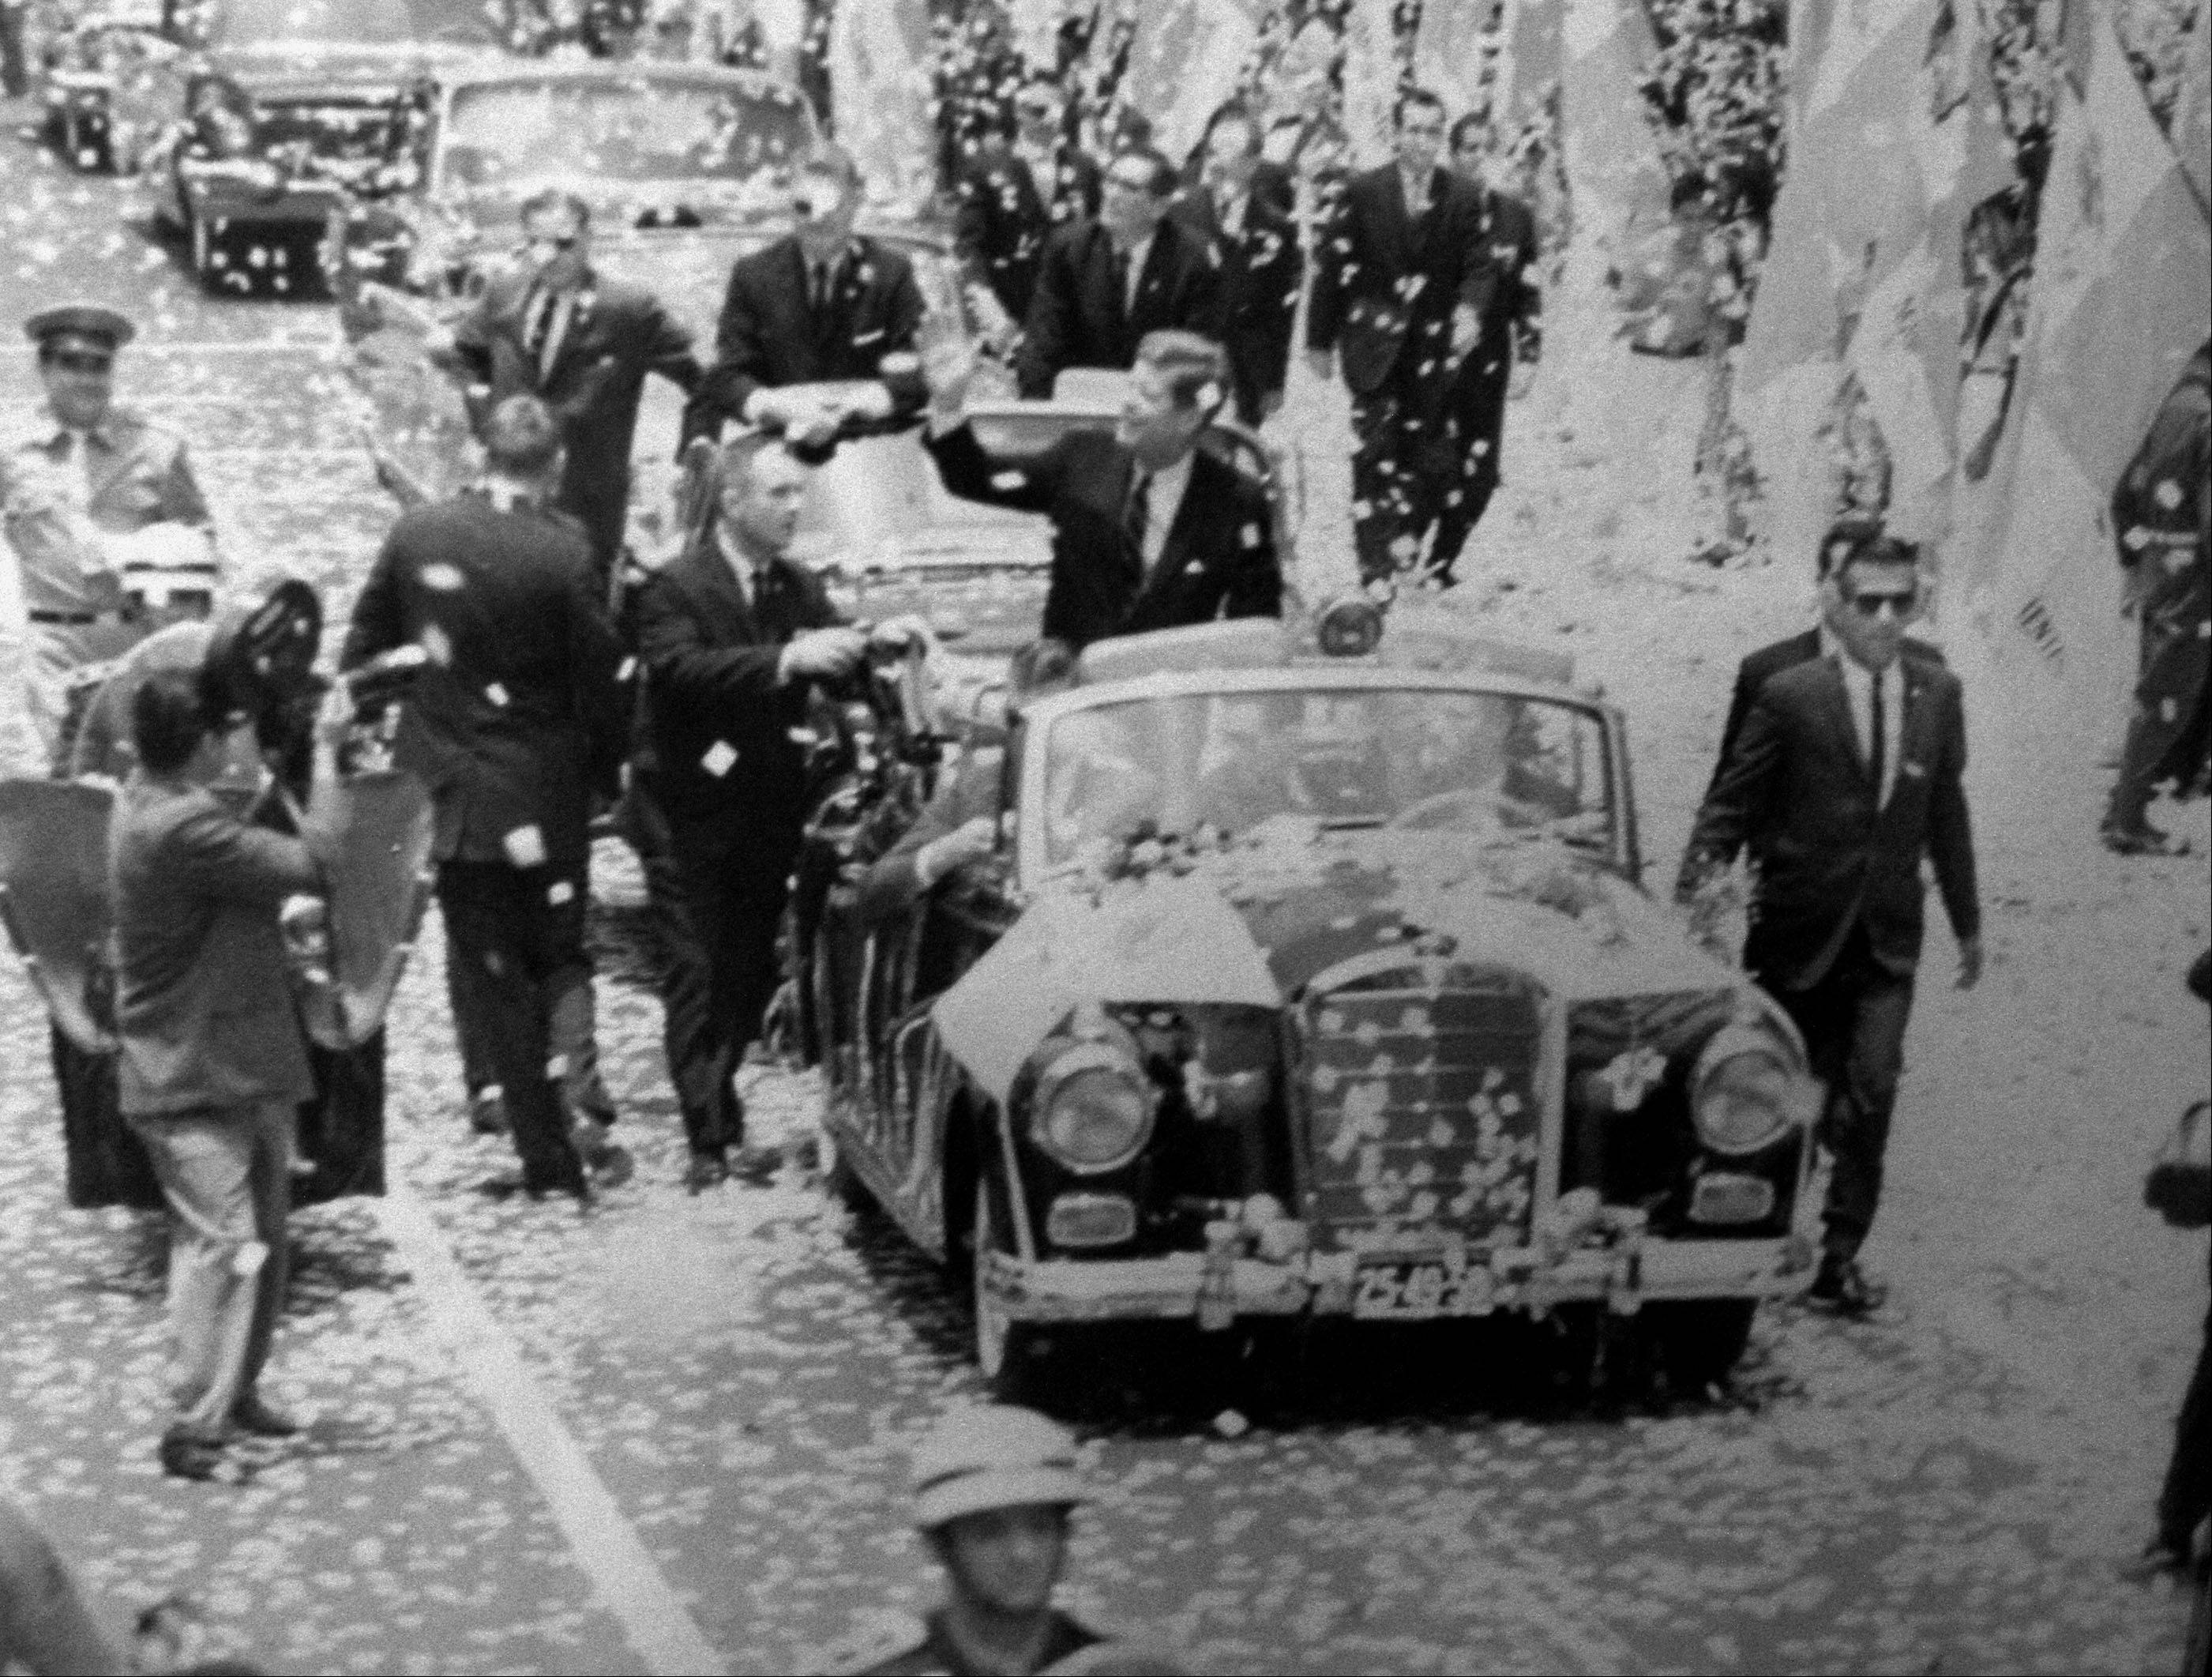 Ken Giannoules of Arlington Heights, right of car wearing sunglasses, working as a Secret Service agent on detail with President John F. Kennedy during a parade in Mexico City in 1962. Giannoules said all of his historical photographs are kept at a storage location.